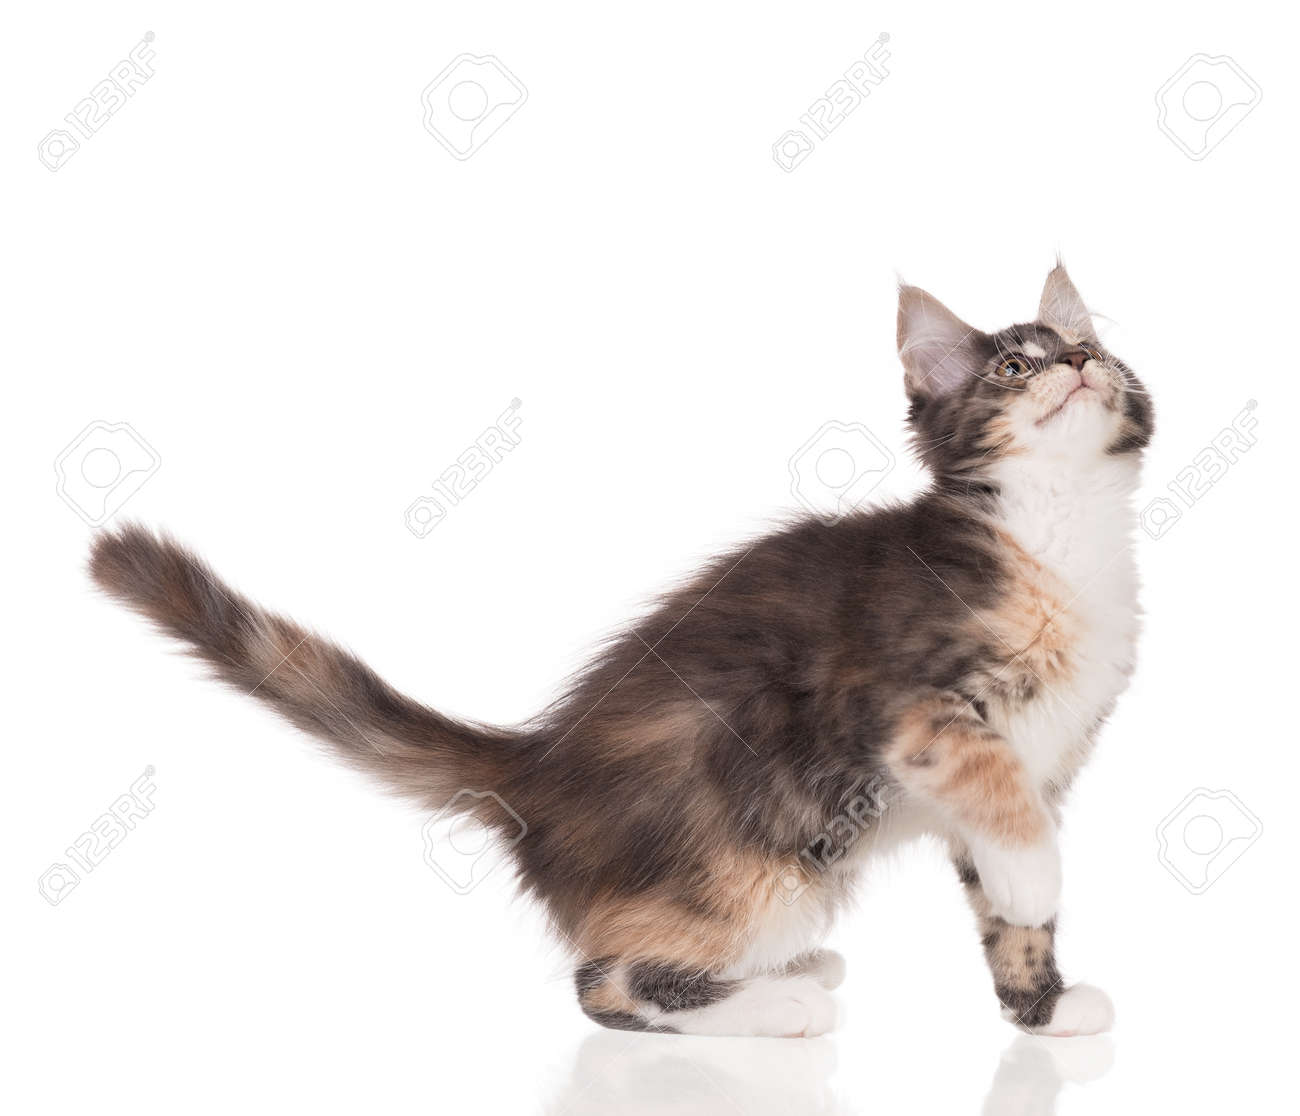 Fluffy Maine Coon kitten isolated over white background - 121861745